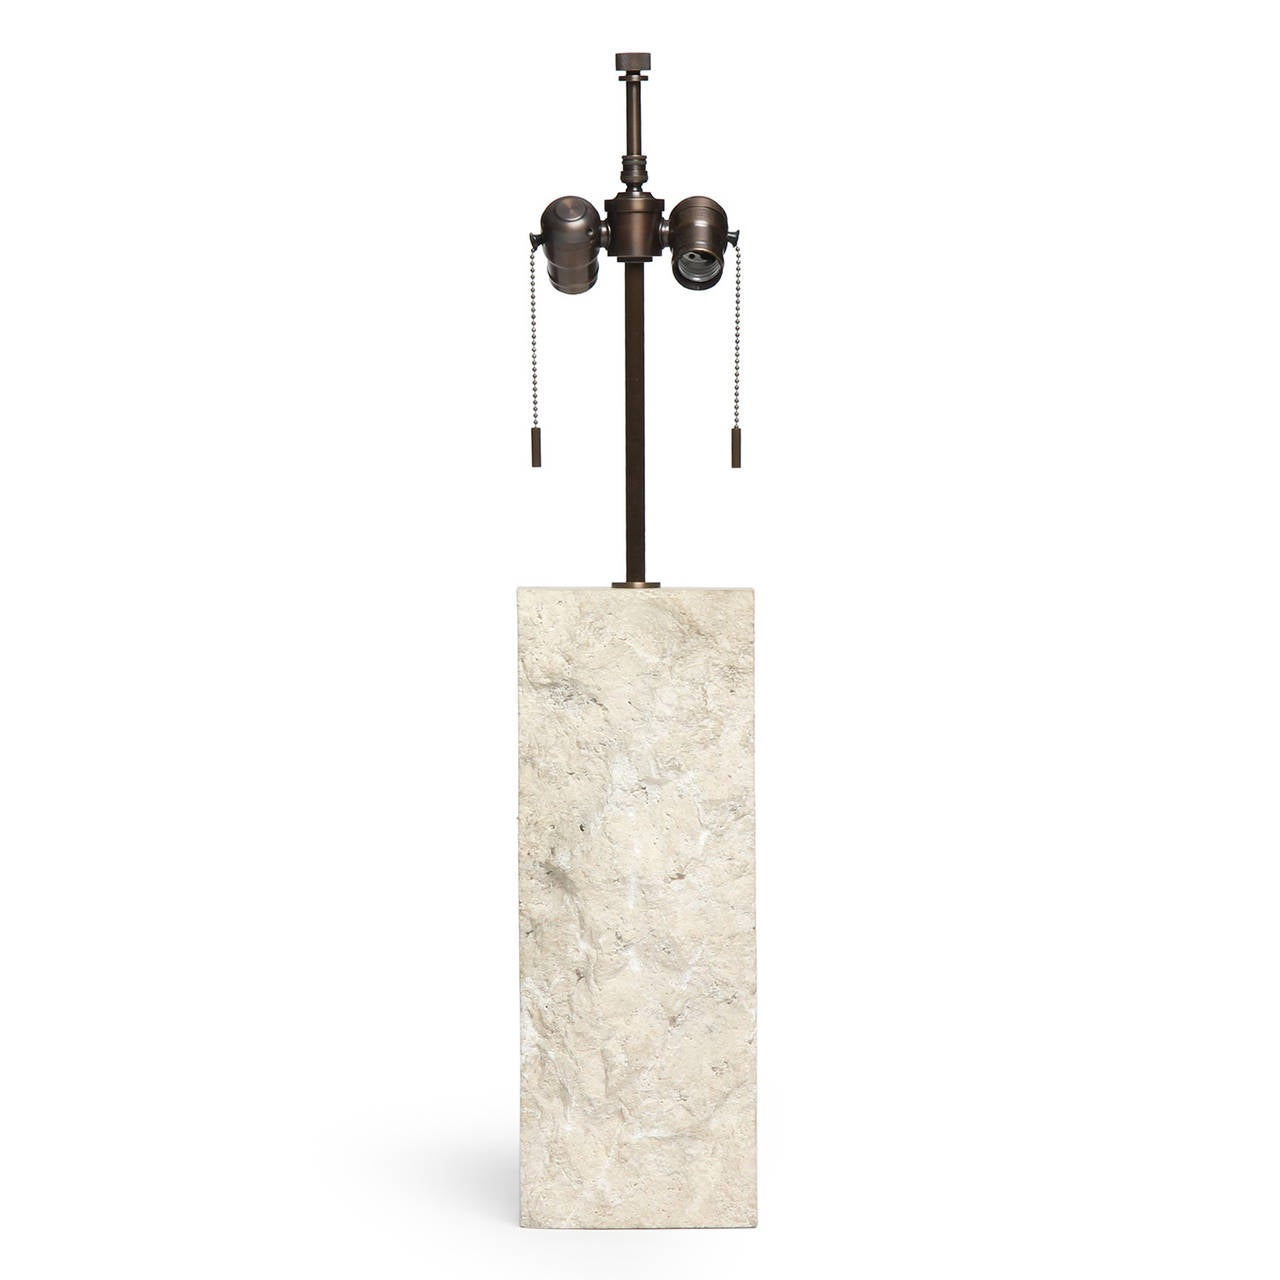 A substantial rectangular solid white limestone table lamp with a chipped surface.